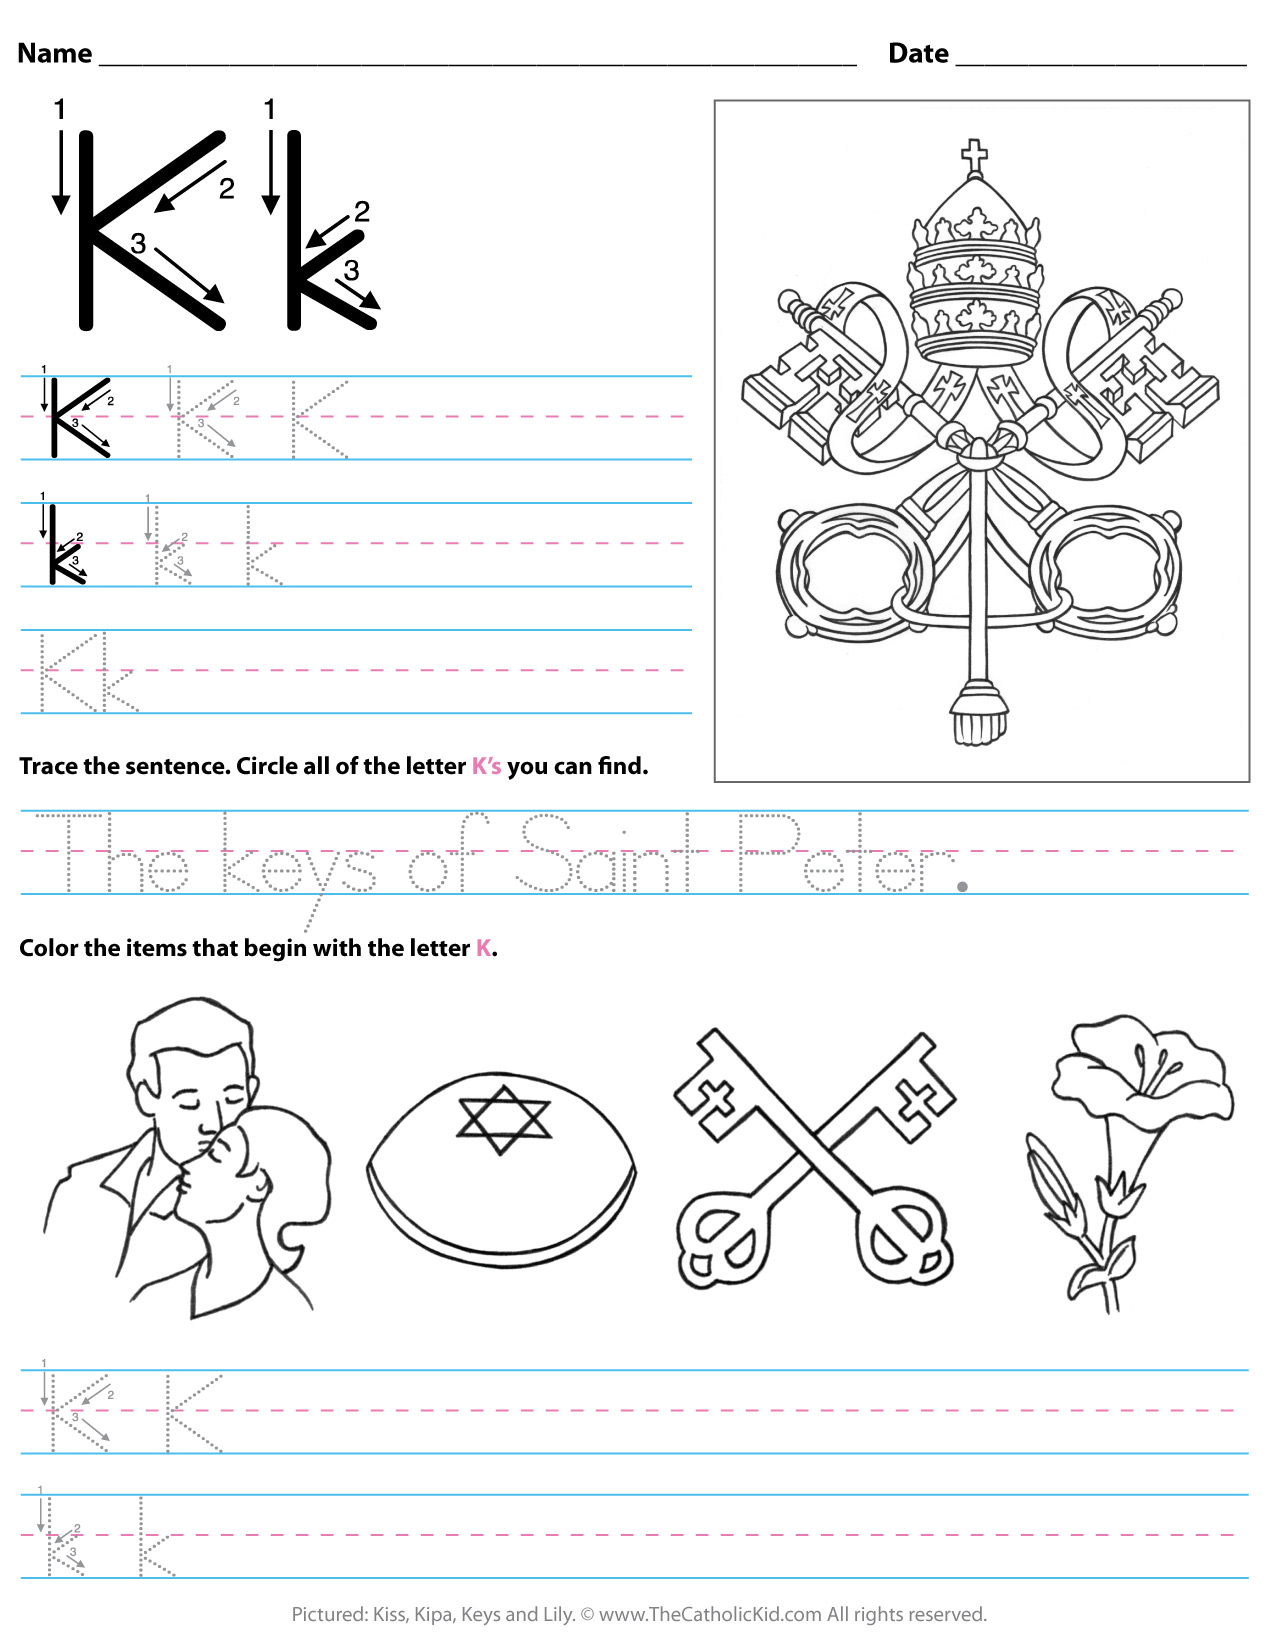 Catholic Alphabet Letter K Worksheet Preschool Kindergarten regarding Letter K Worksheets For Kinder